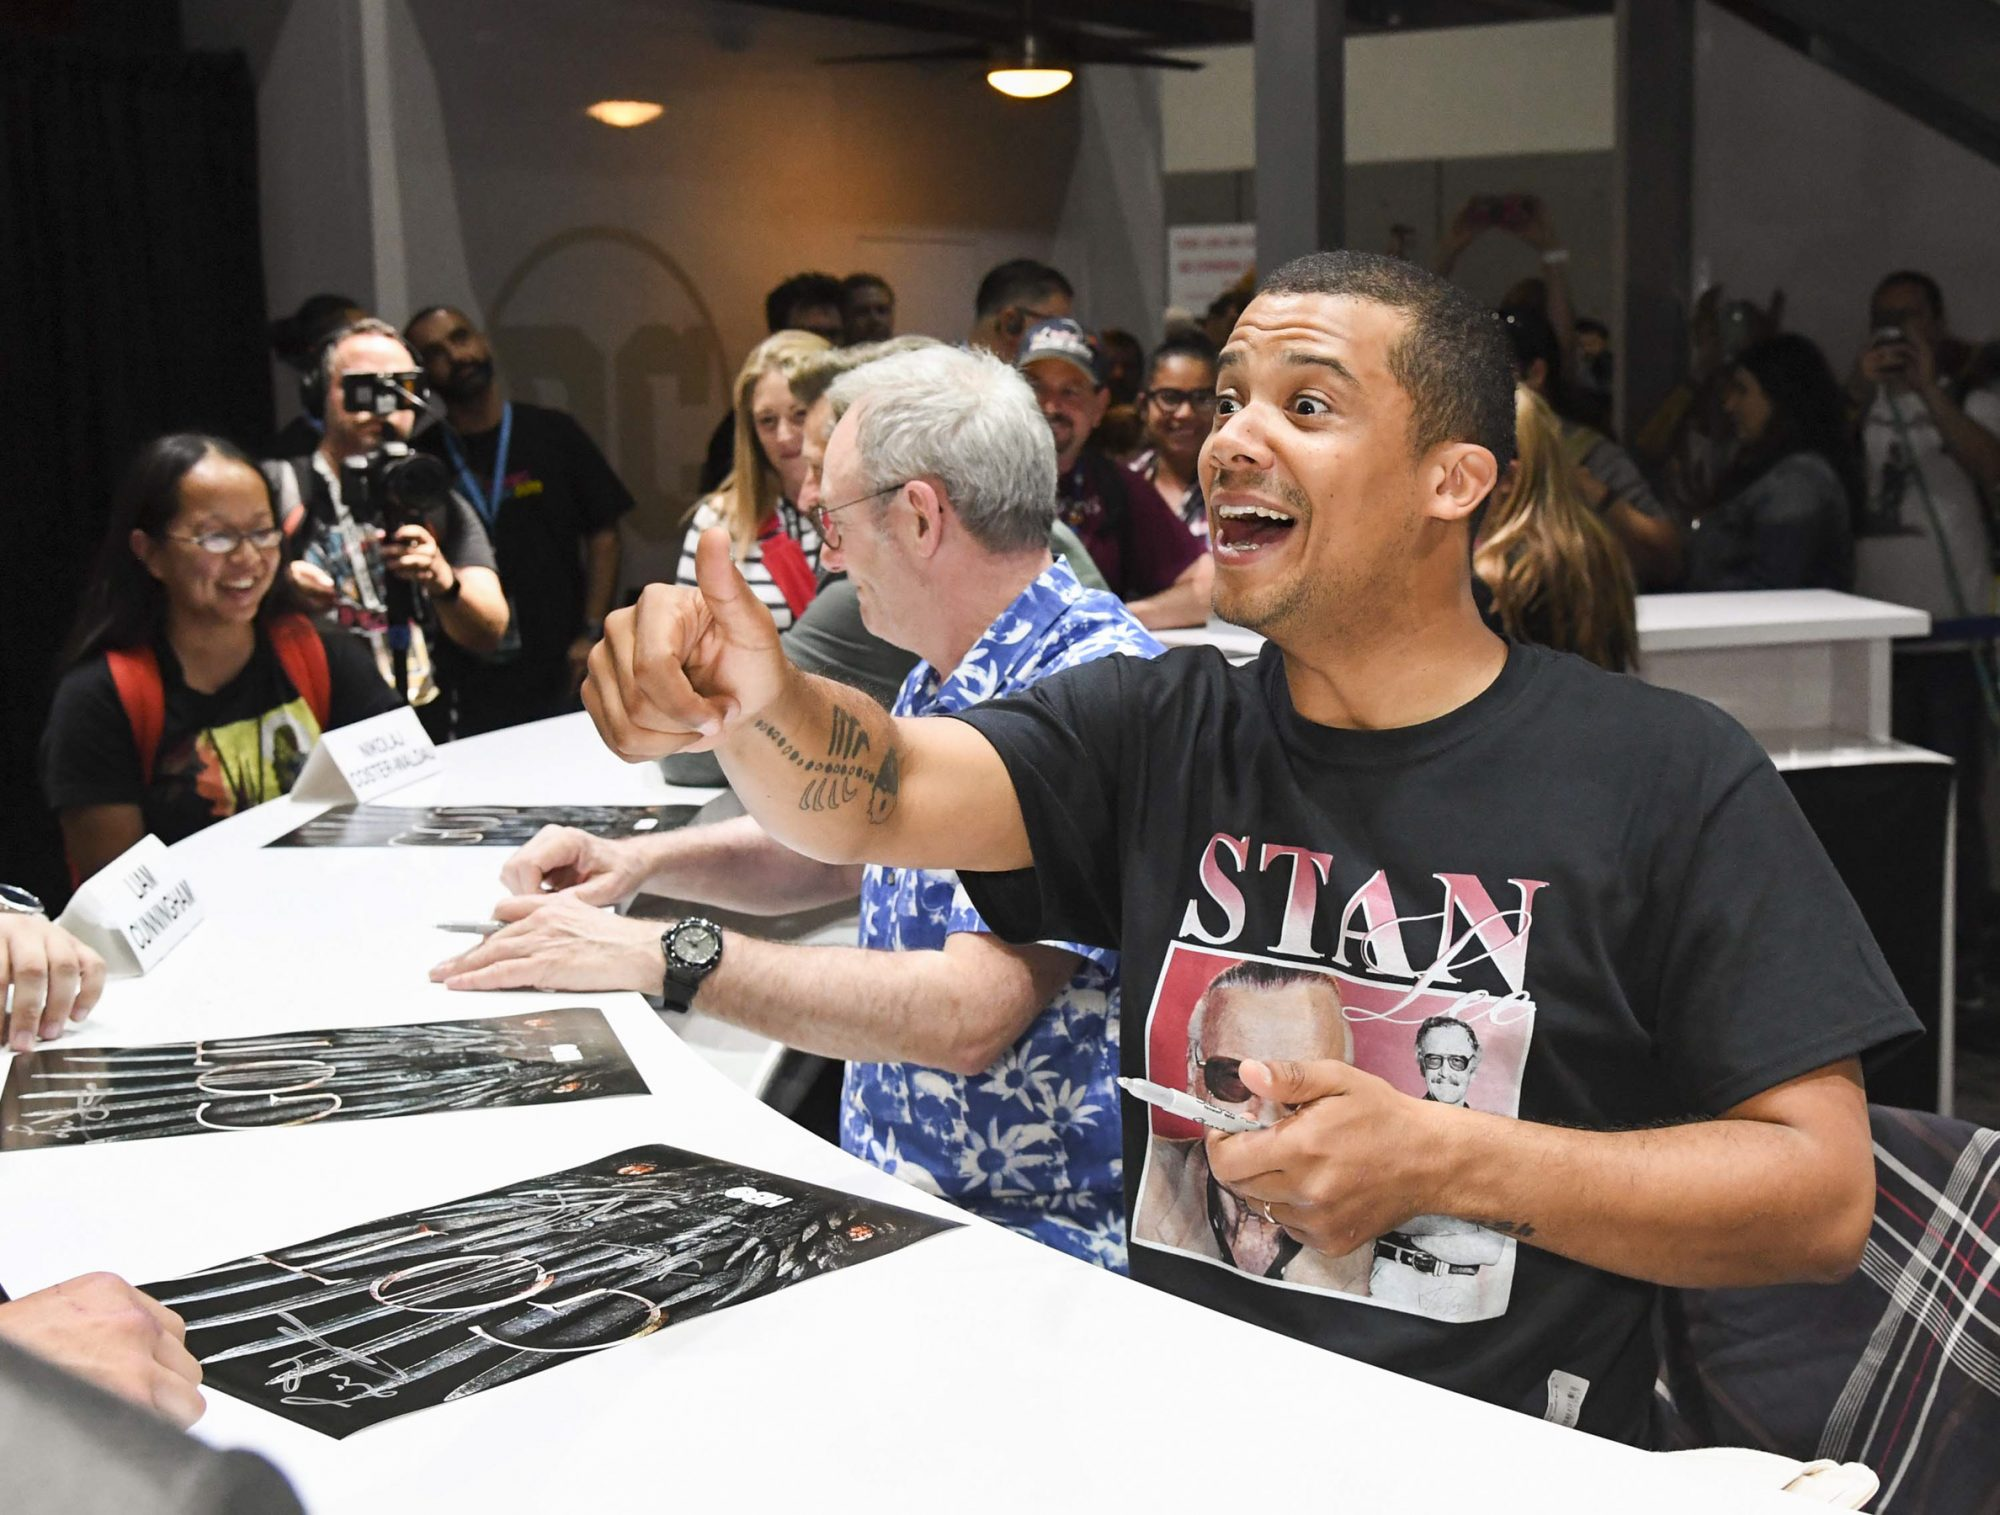 """SAN DIEGO, CALIFORNIA - JULY 19: Jacob Anderson at """"Game Of Thrones"""" Comic Con Autograph Signing 2019 on July 19, 2019 in San Diego, California. (Photo by Jeff Kravitz/FilmMagic for HBO)"""